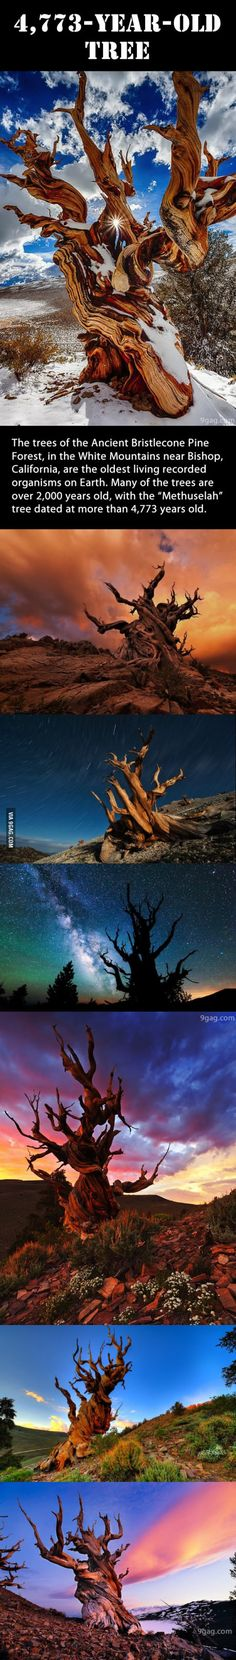 The Oldest Living Organism on Earth